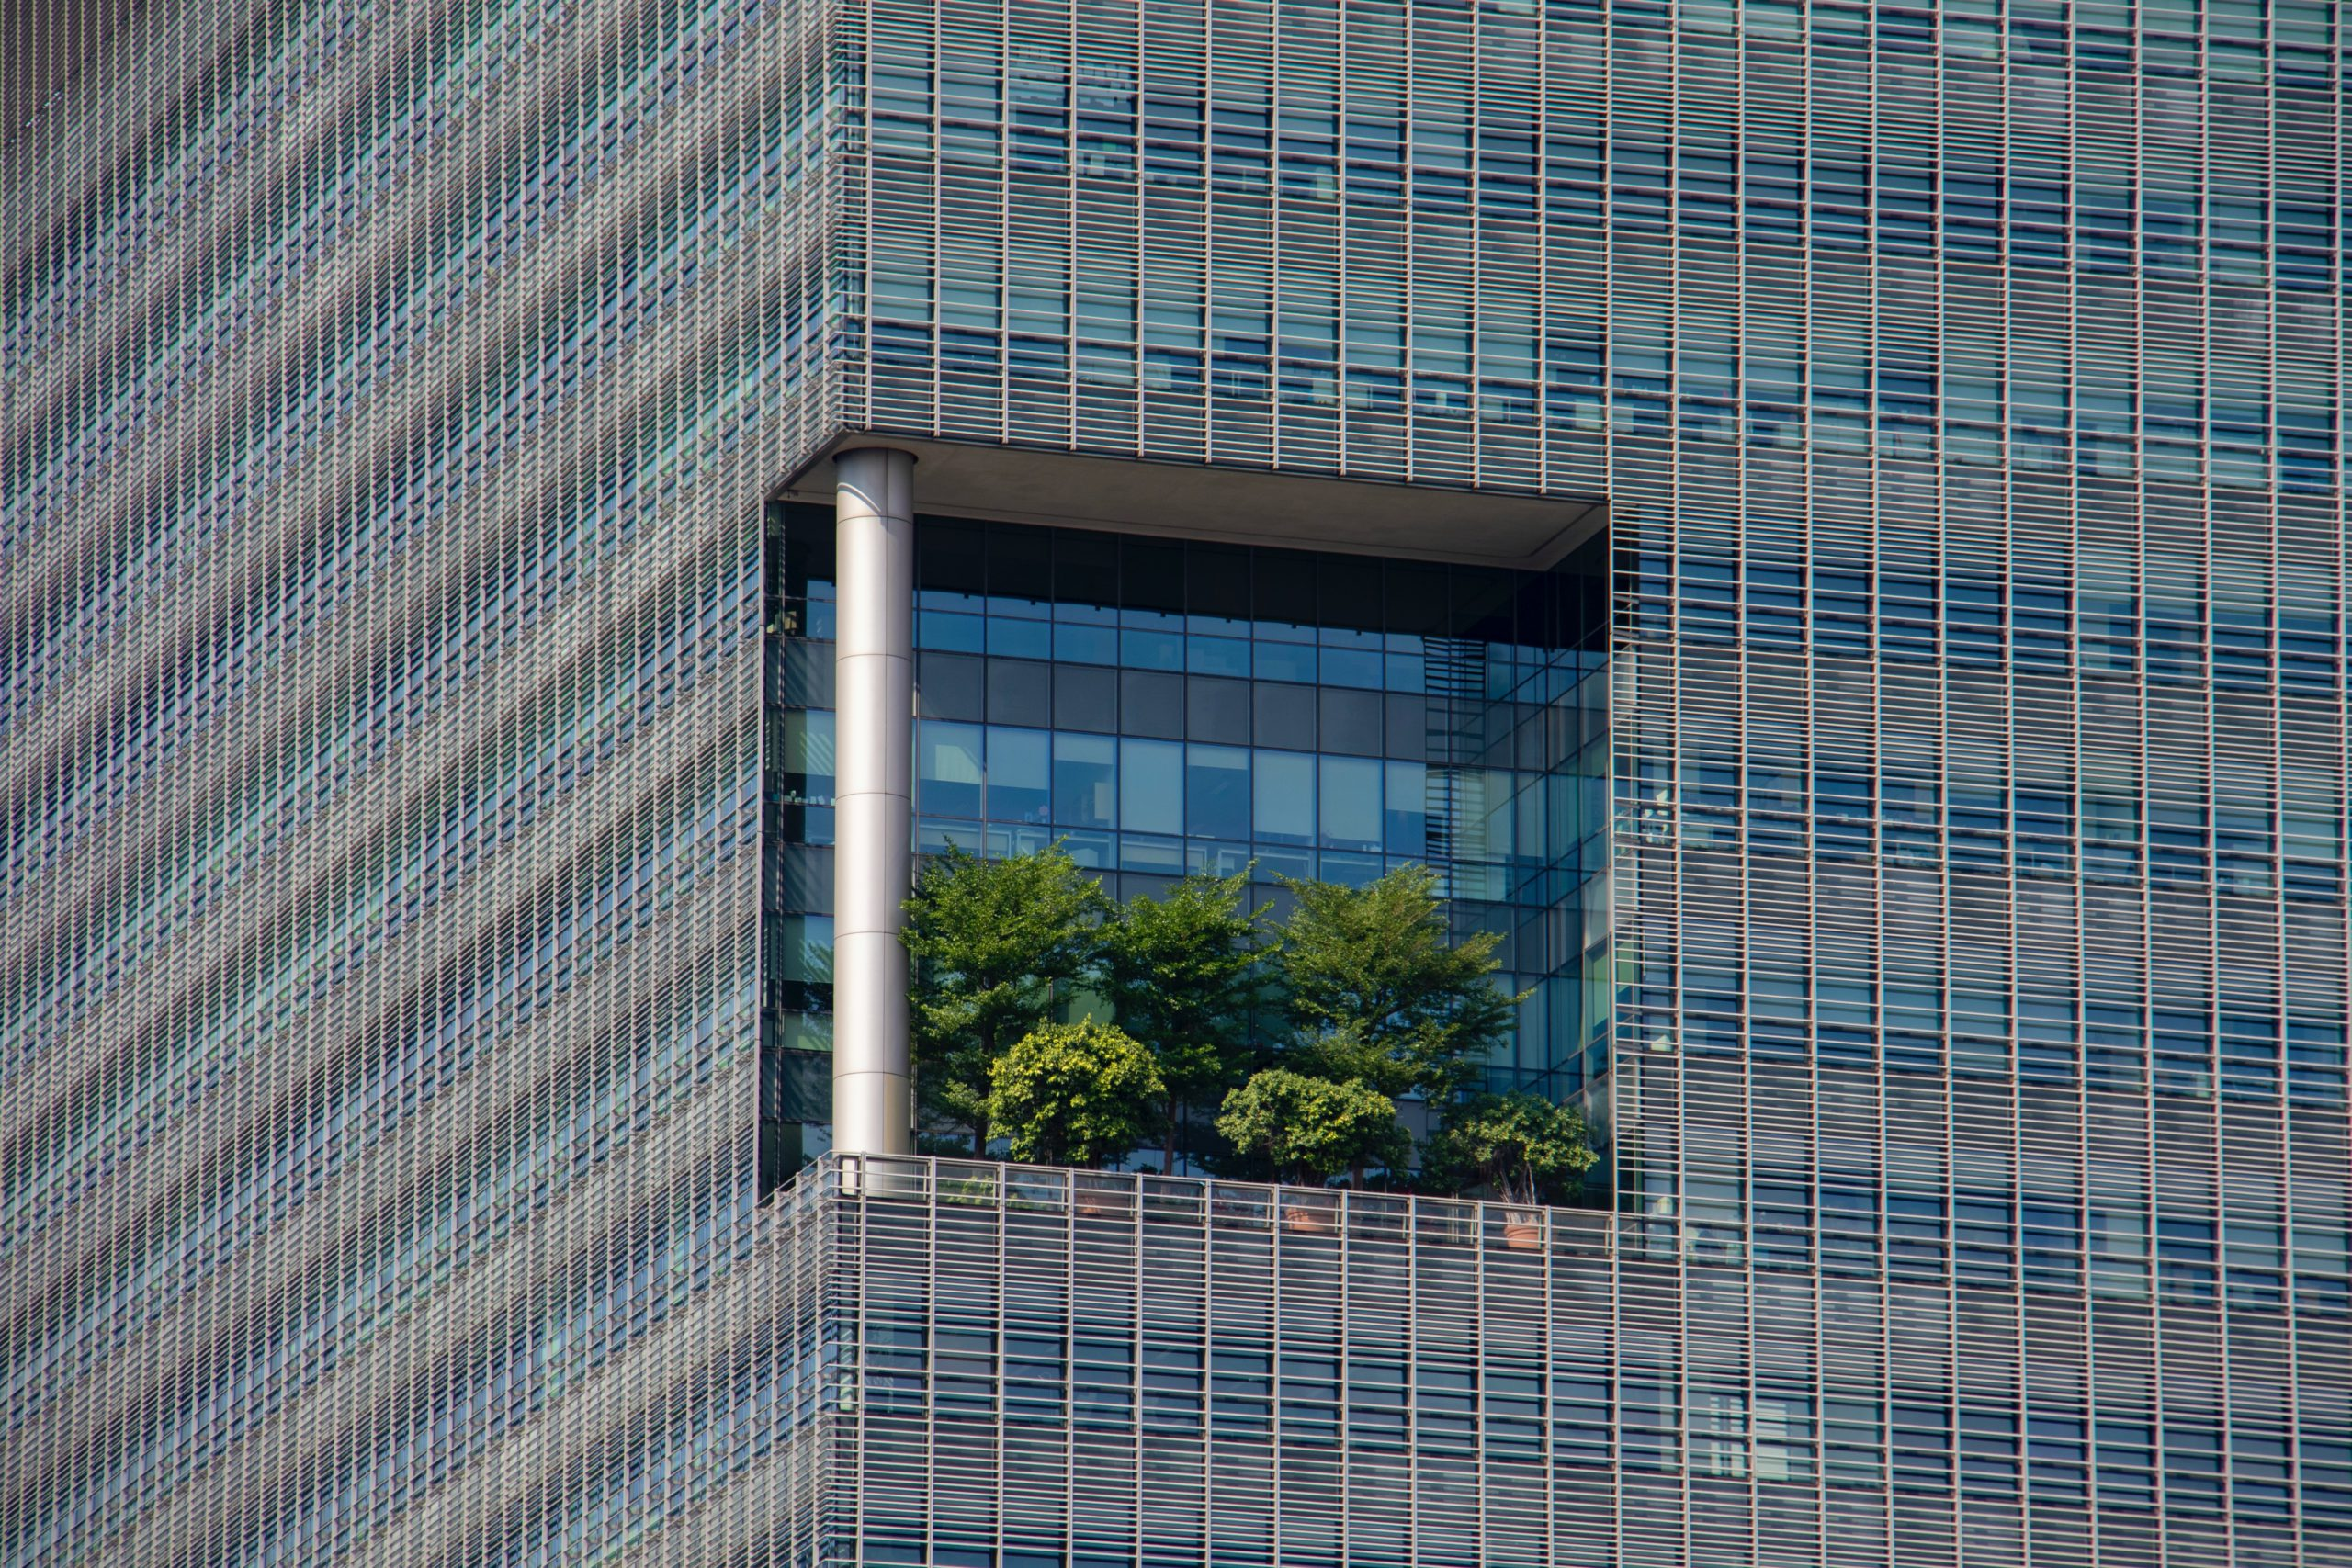 Green Offices: Save Money, Attract Talent and Reduce Carbon Emissions